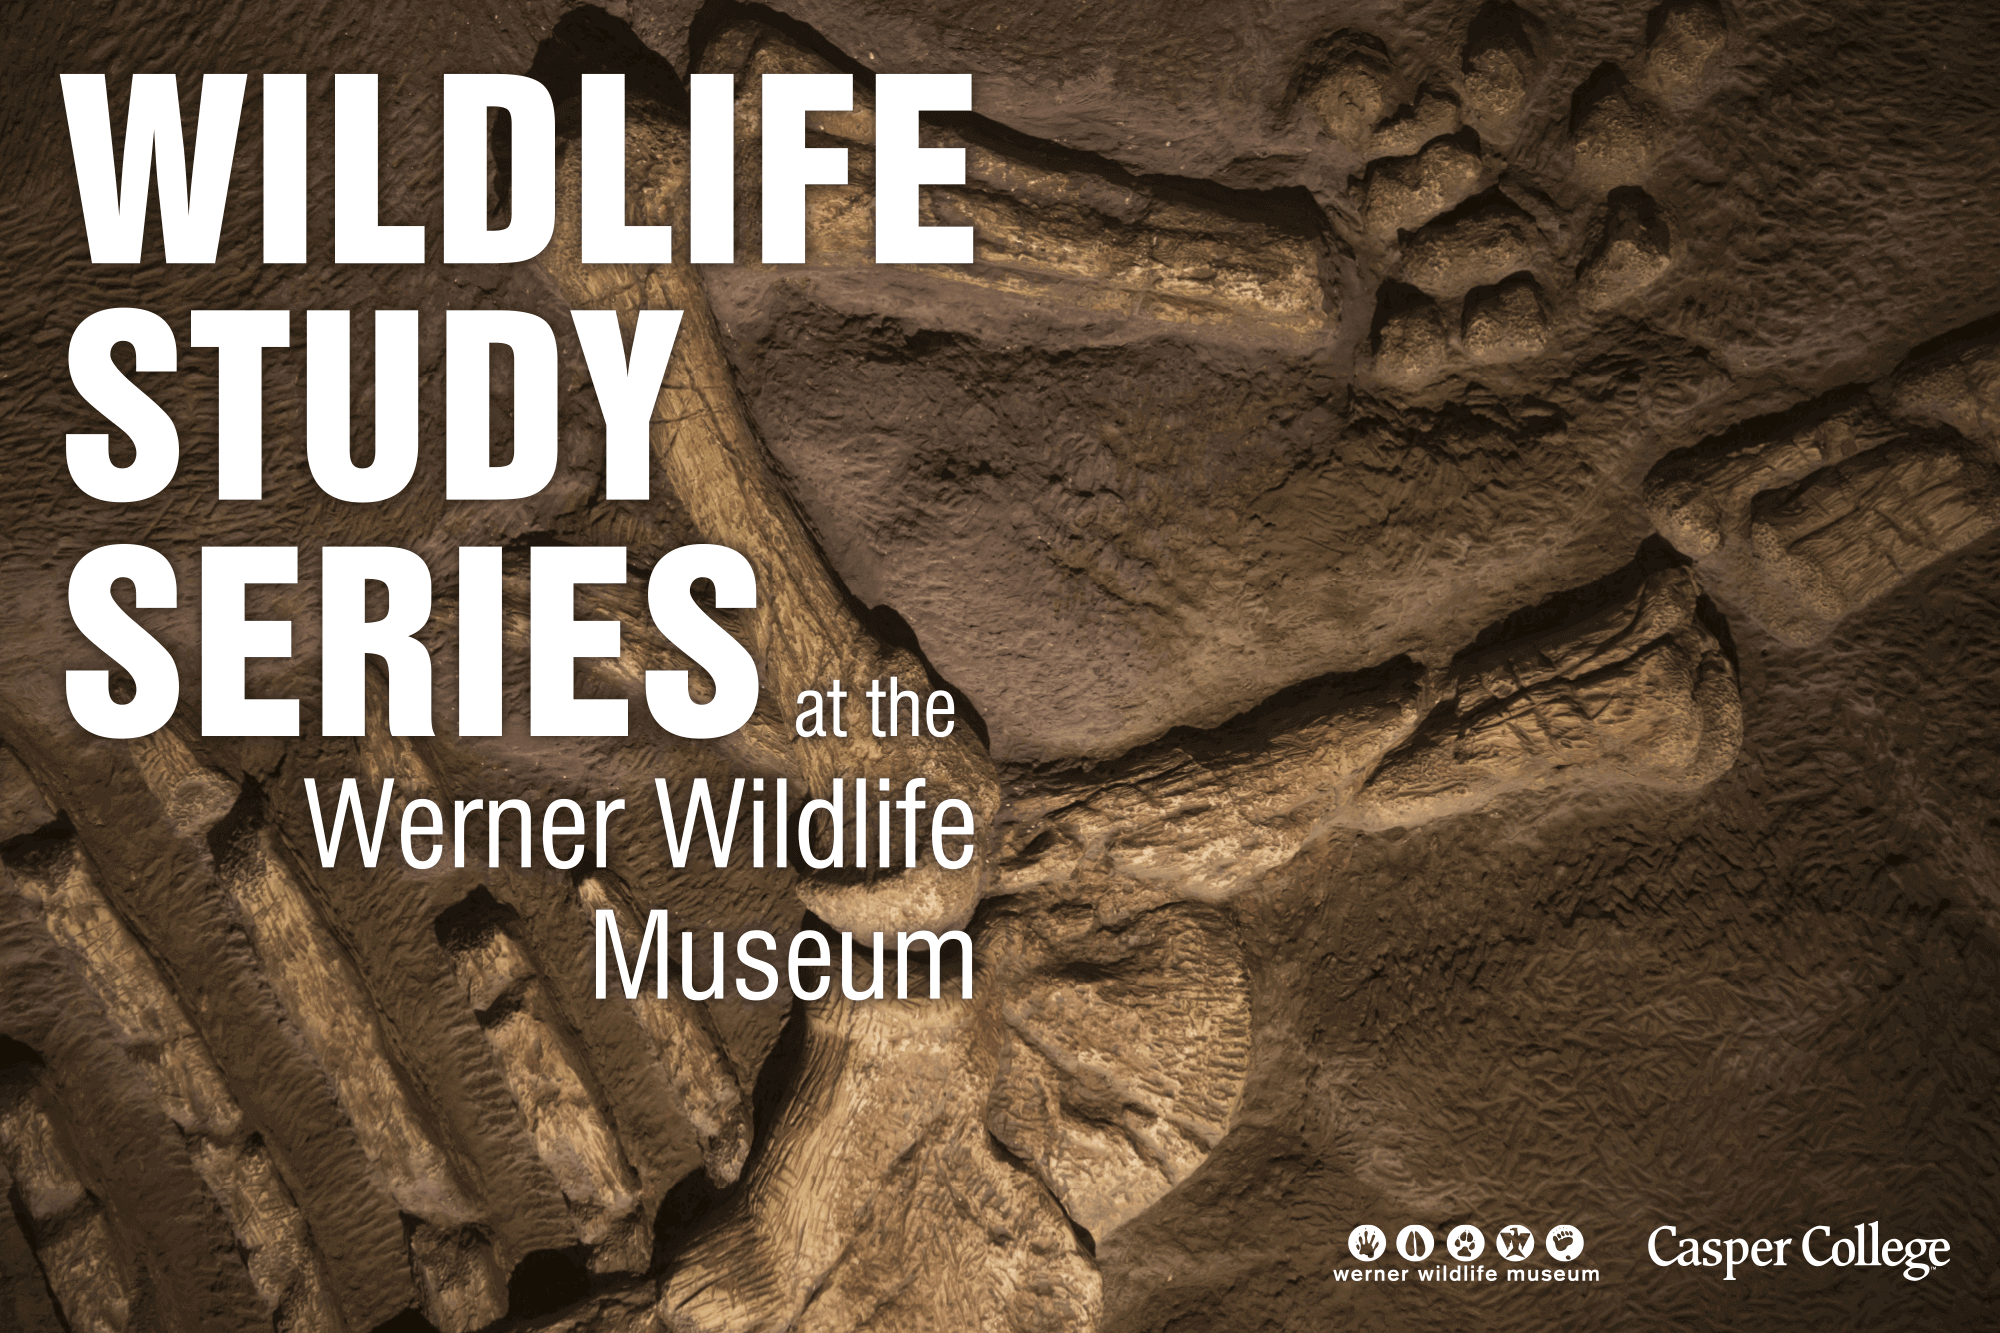 """Image of fossil bones with the words """"Wildlife Study Series."""""""